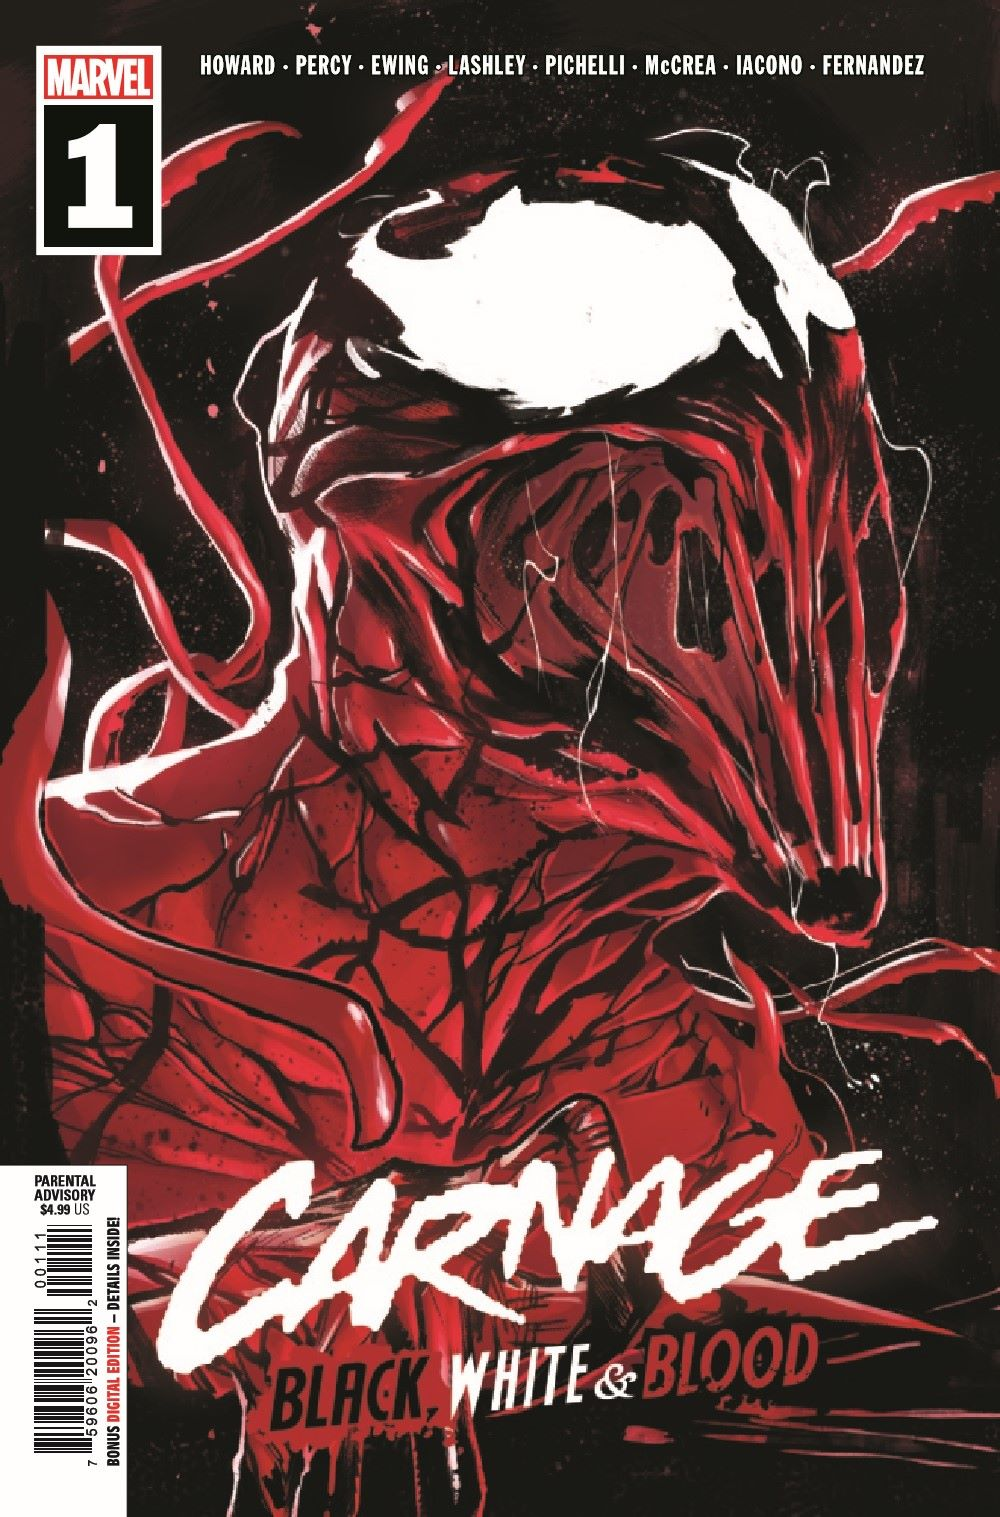 CARNBLKWHBL2021001_Preview-1 ComicList Previews: CARNAGE BLACK WHITE AND BLOOD #1 (OF 4)